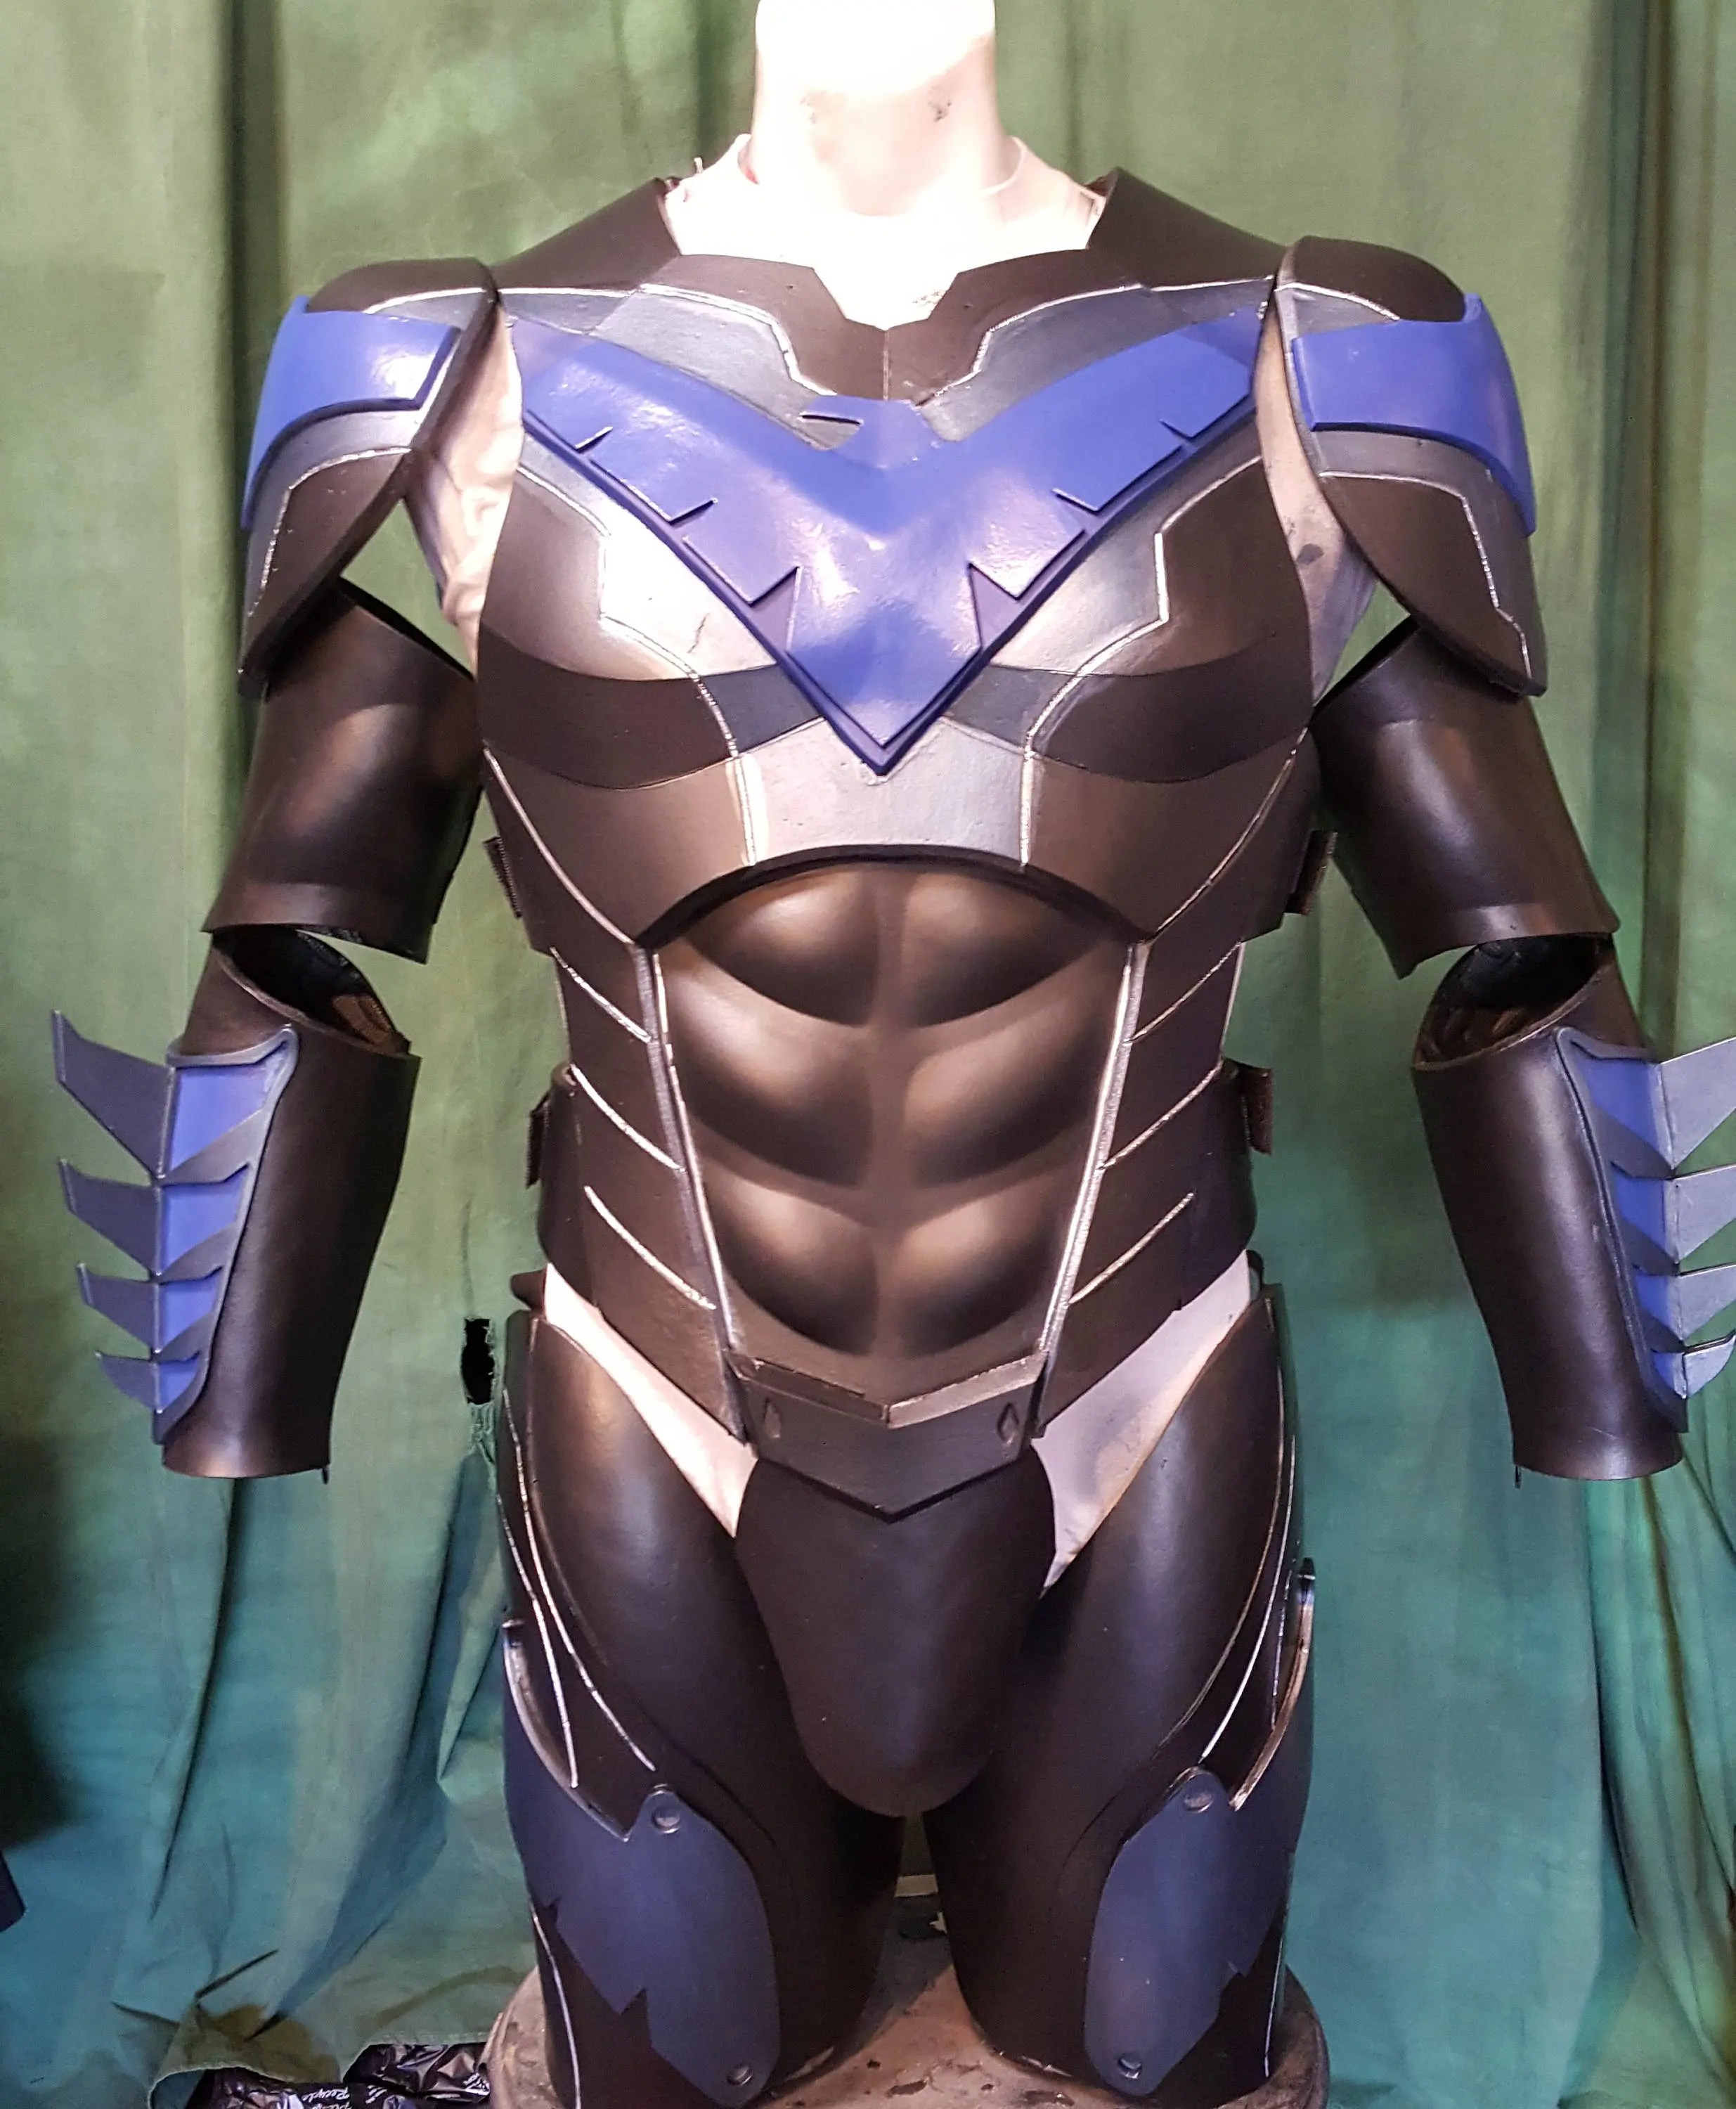 NightWlng complete foam armor TEMPLATES Etsy